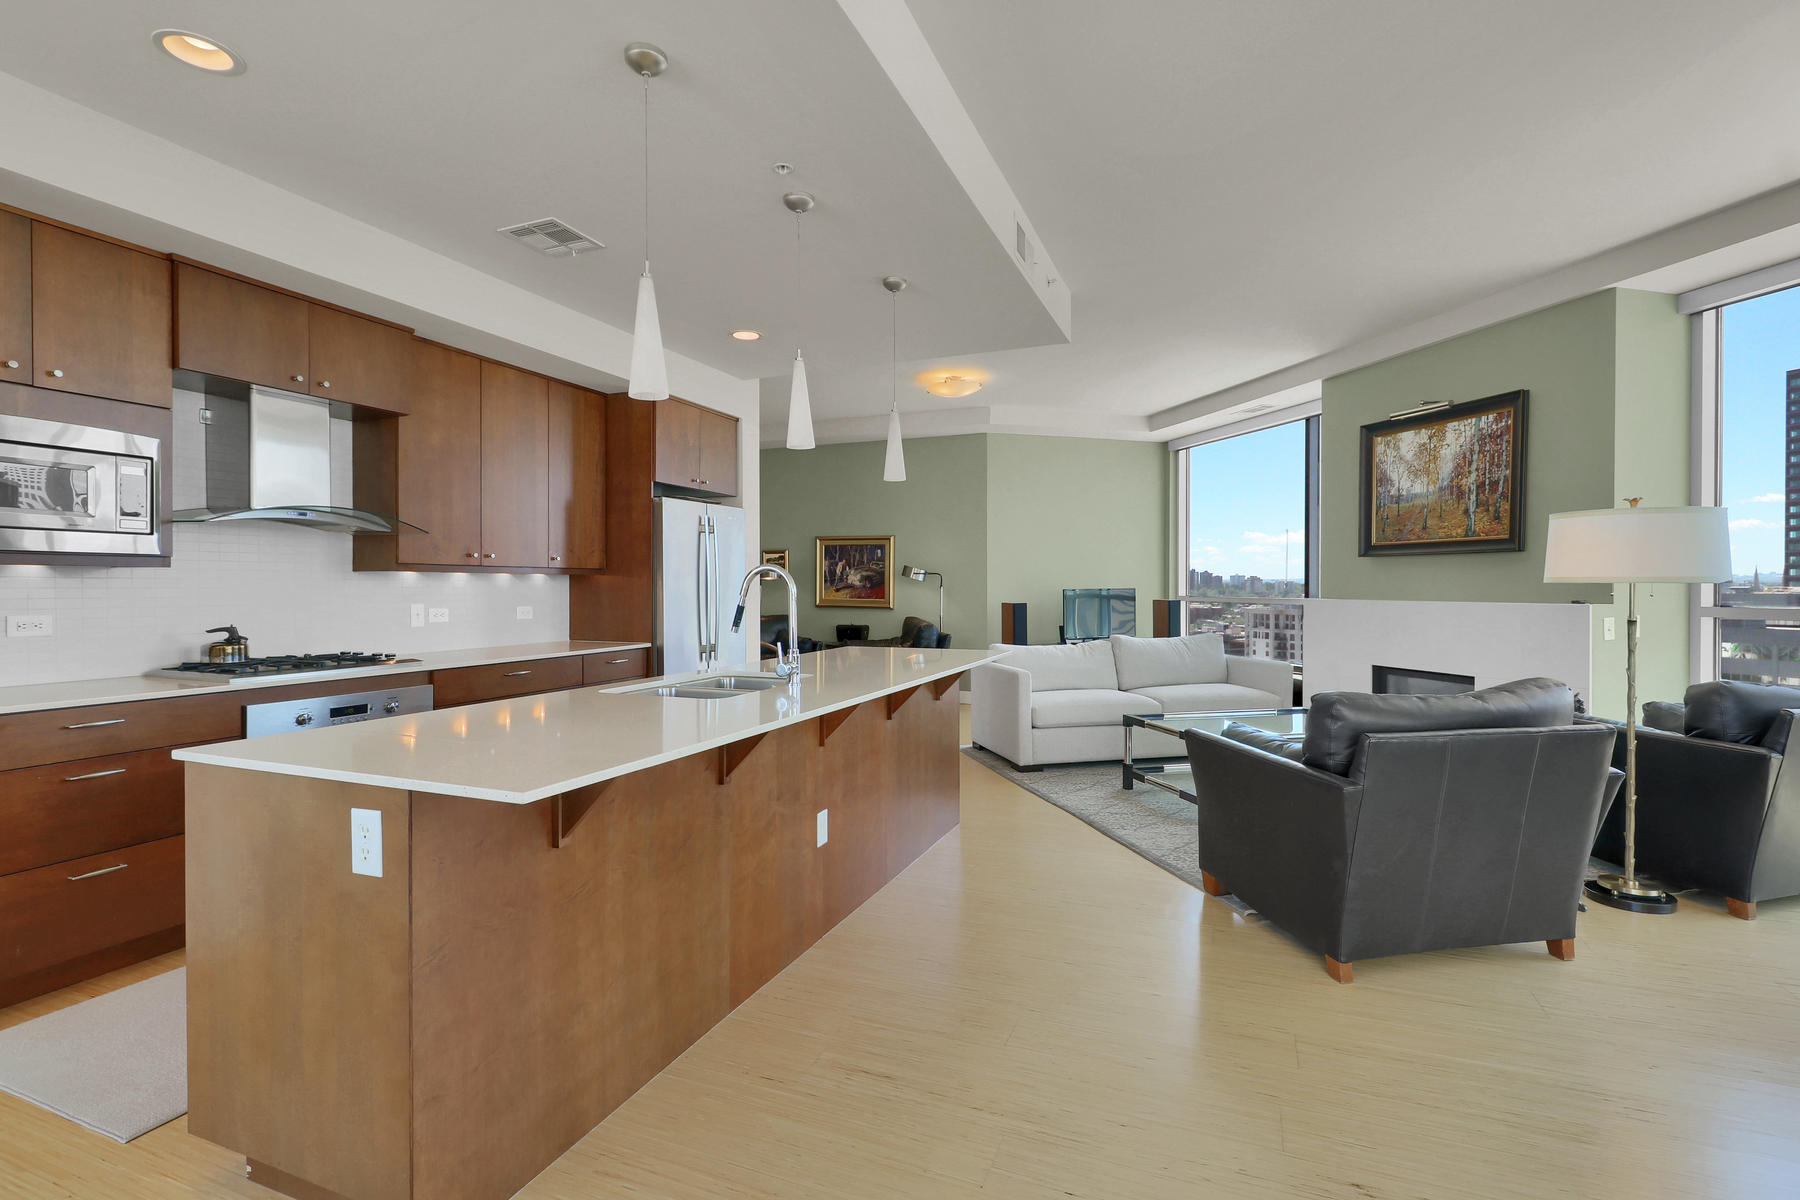 Additional photo for property listing at 20th FLOOR Extraordinary corner location 2001 Lincoln St #2011 Denver, Colorado 80202 United States